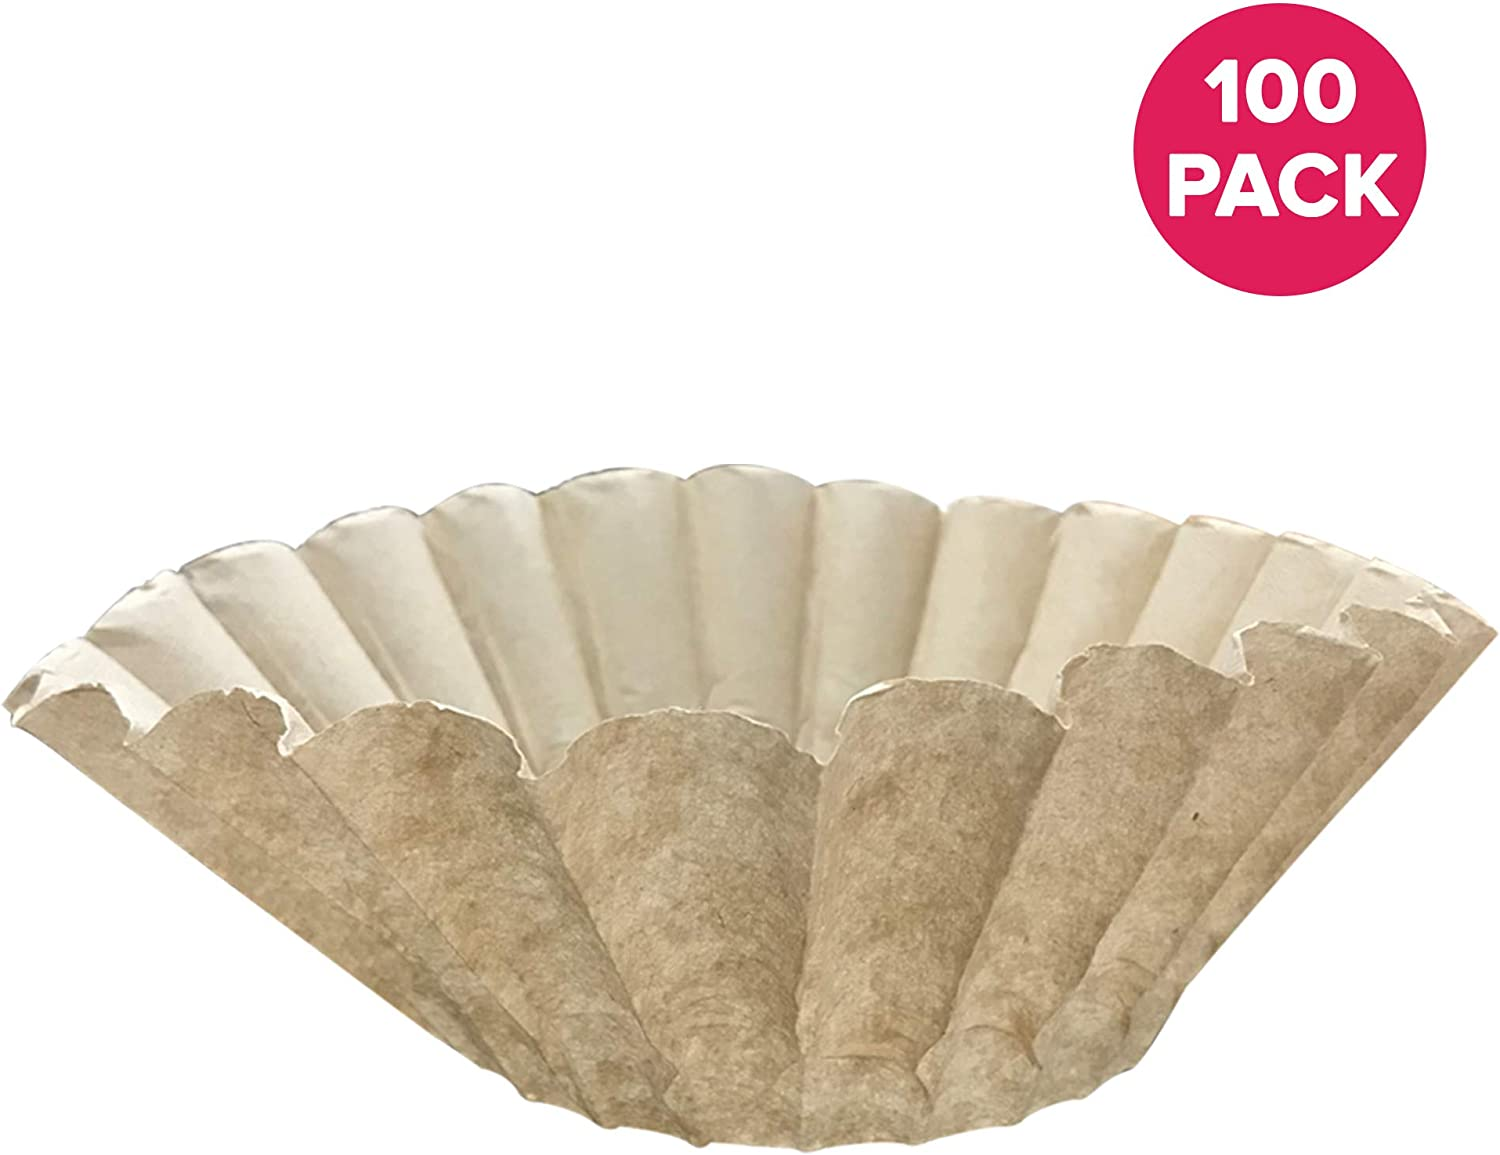 denken Crucial 100Pk Replacement für Bunn Unbleached Paper Coffee Filter Fits 12 Cup Commercial Coffee Brewers, Compatible mit Teil # 1M5002 & 20115.0000